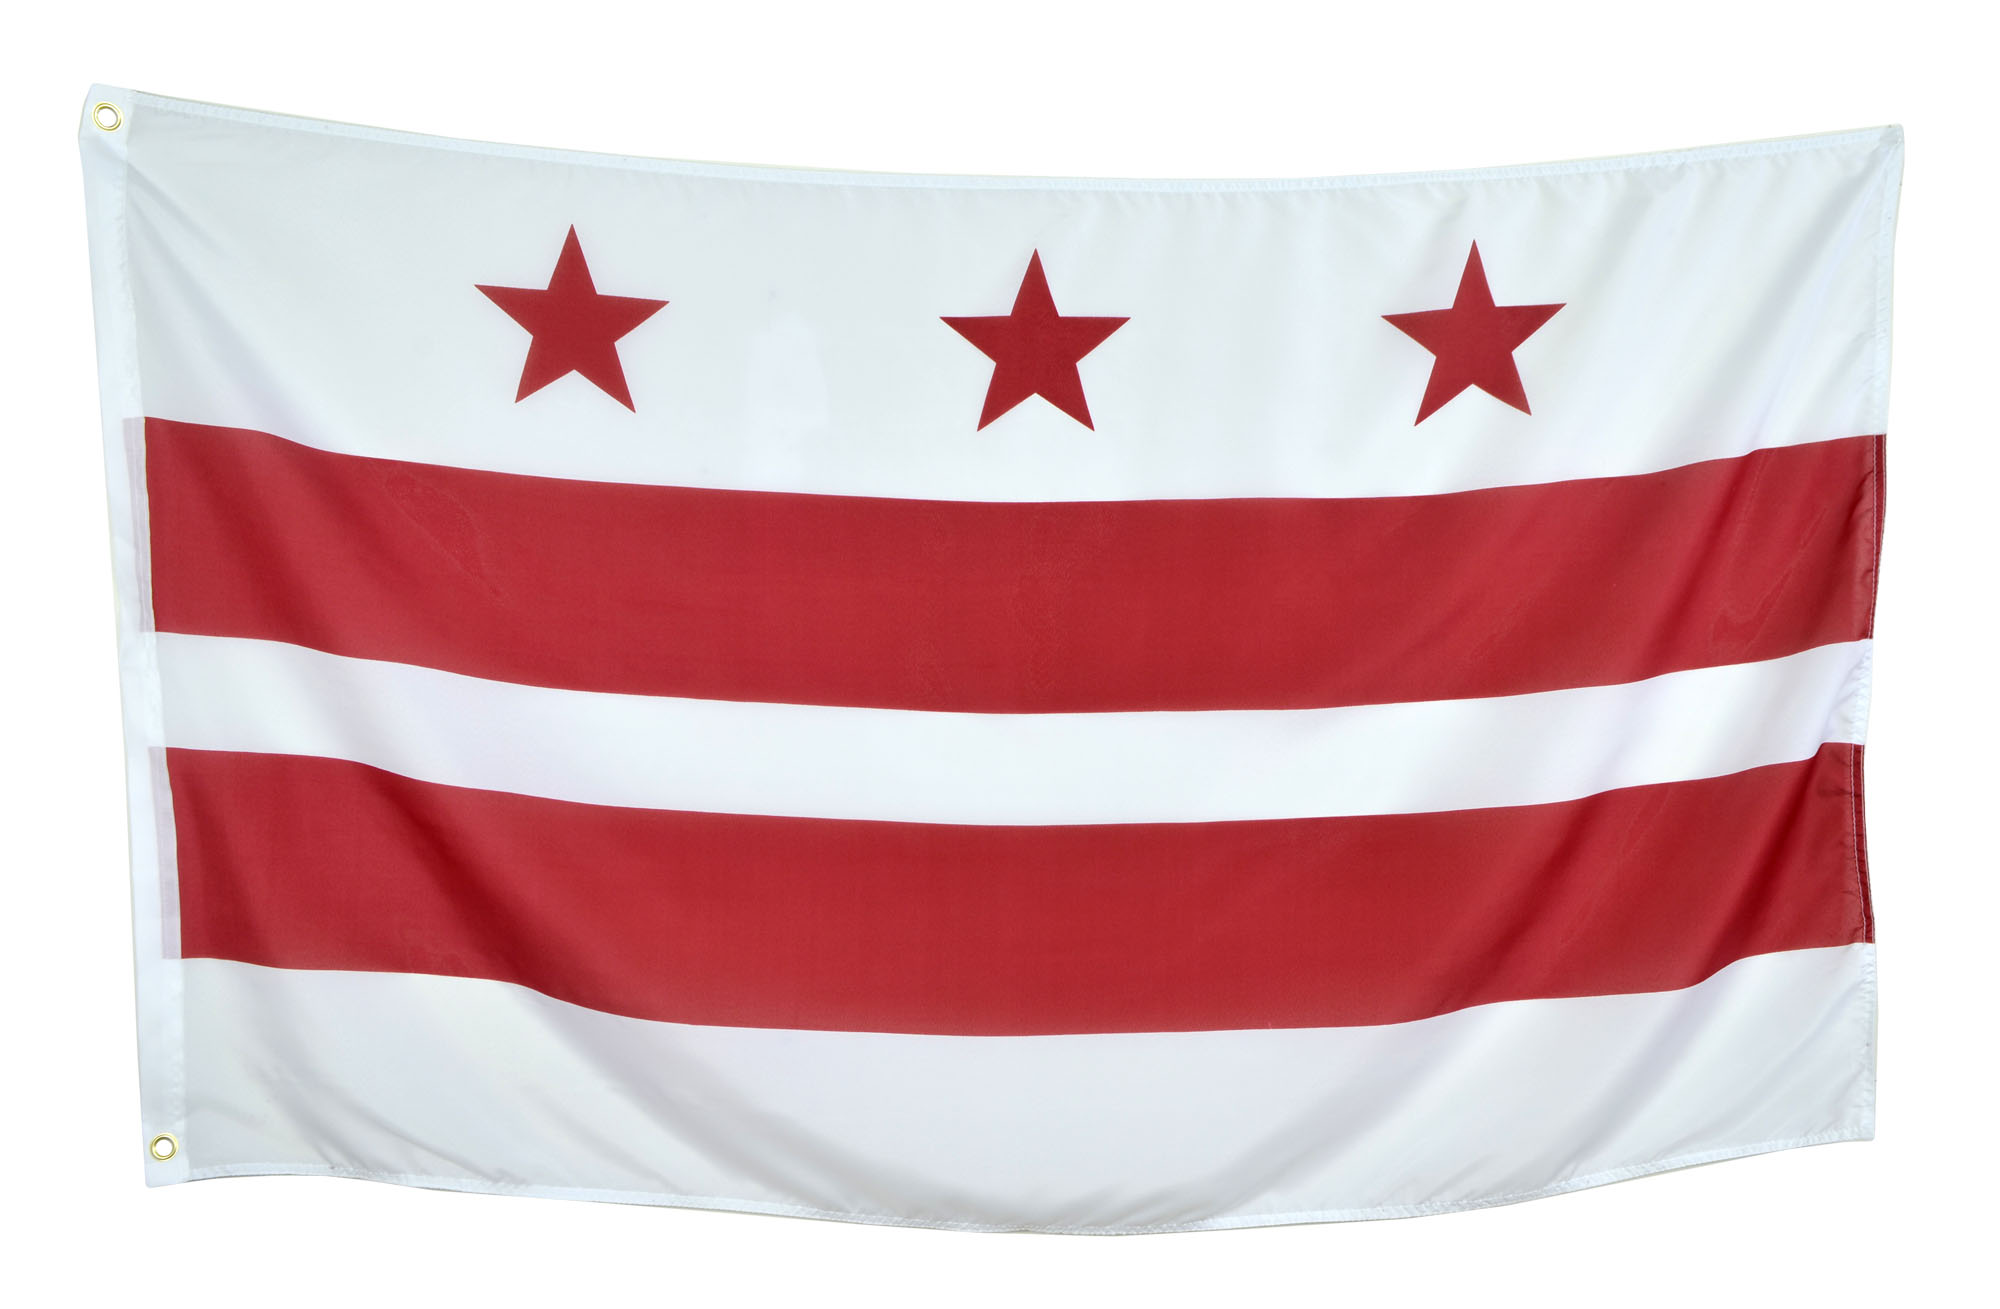 Shop72 US Washington State Flags - Washington Flag - 3x5' Flag from Sturdy 100D Polyester - Canvas Header Brass Grommets Double Stitched from Wind Sid